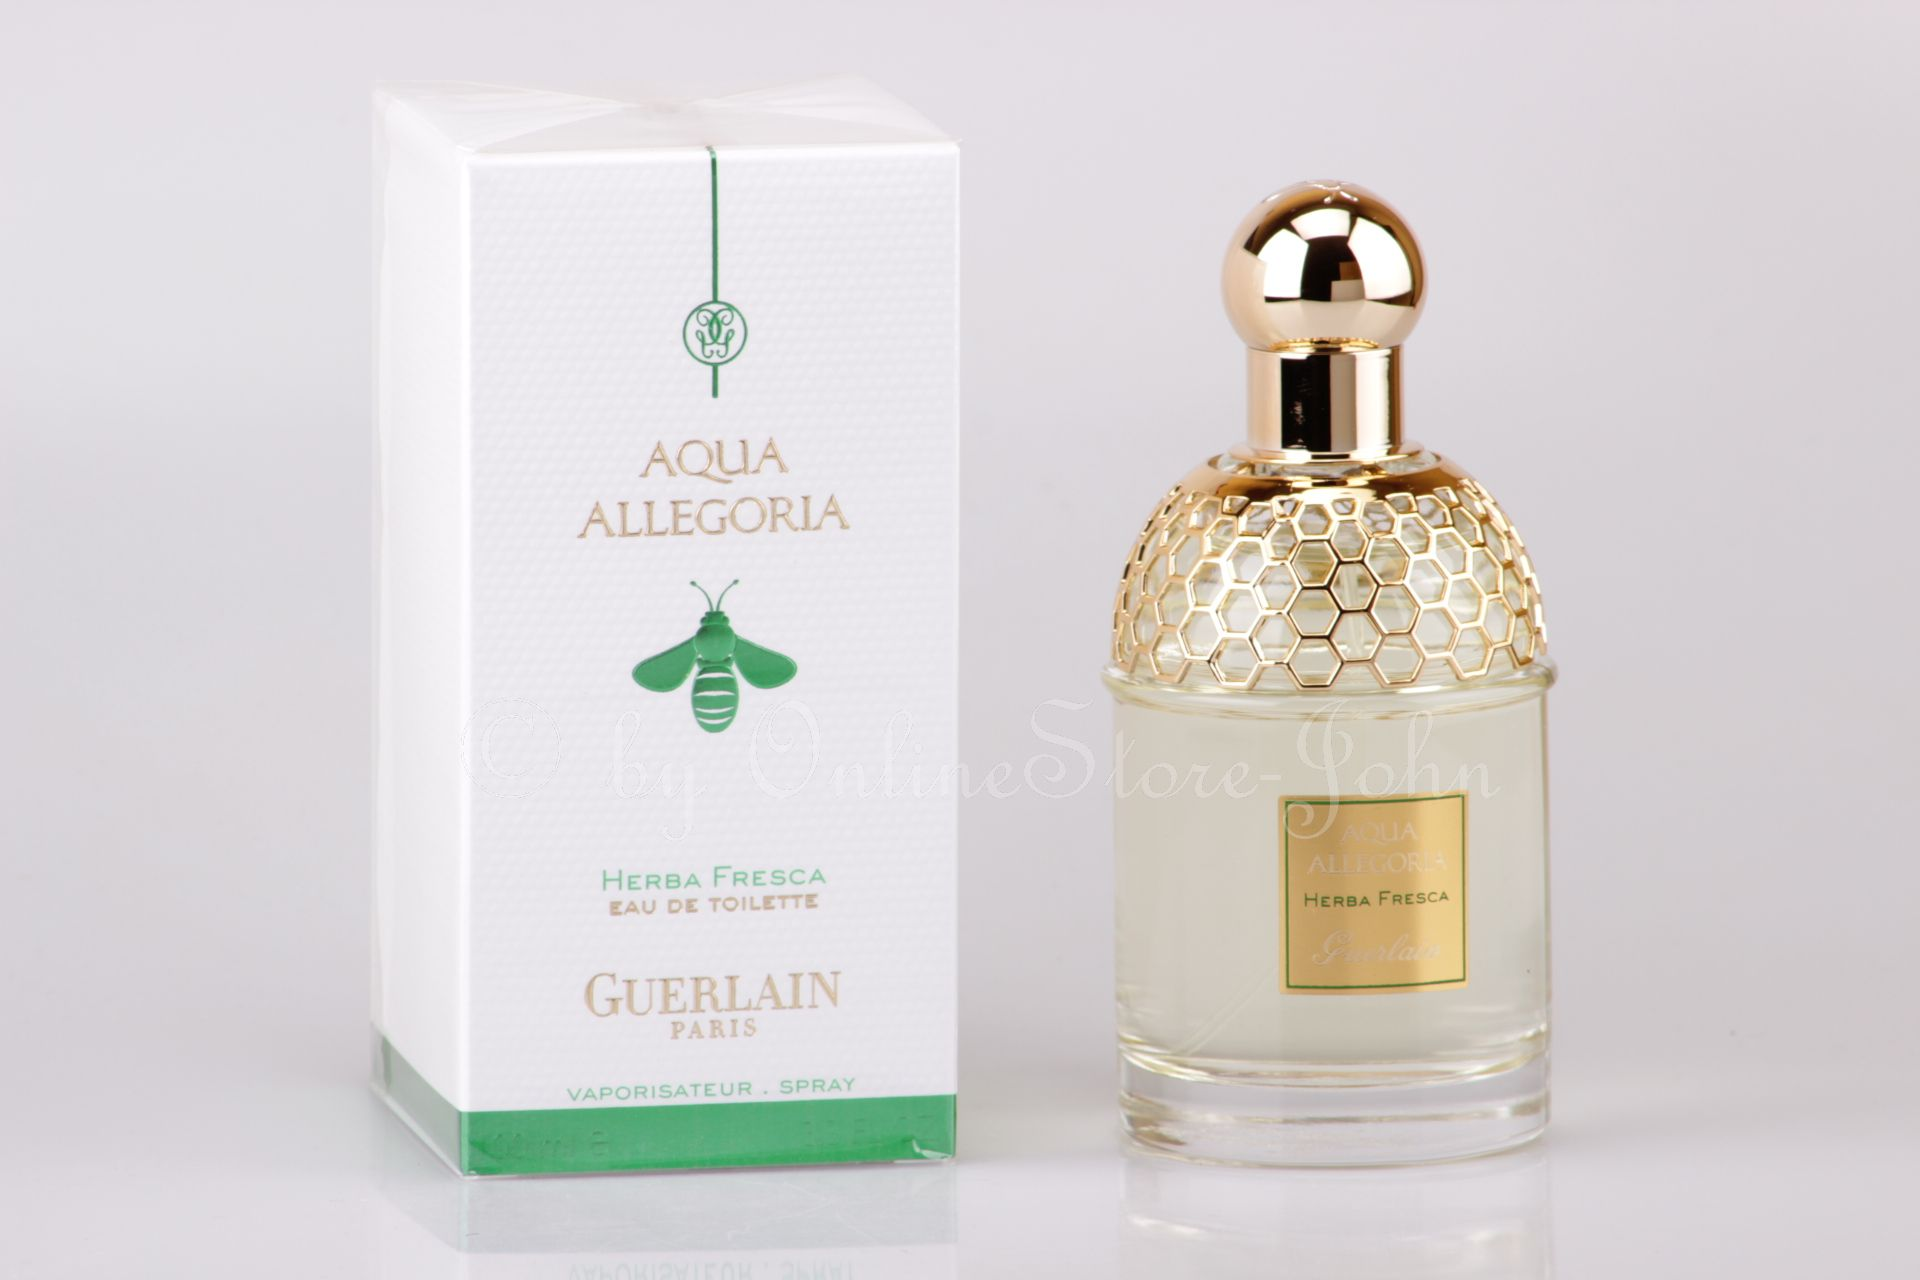 guerlain aqua allegoria herba fresca 100ml edt eau de toilette. Black Bedroom Furniture Sets. Home Design Ideas